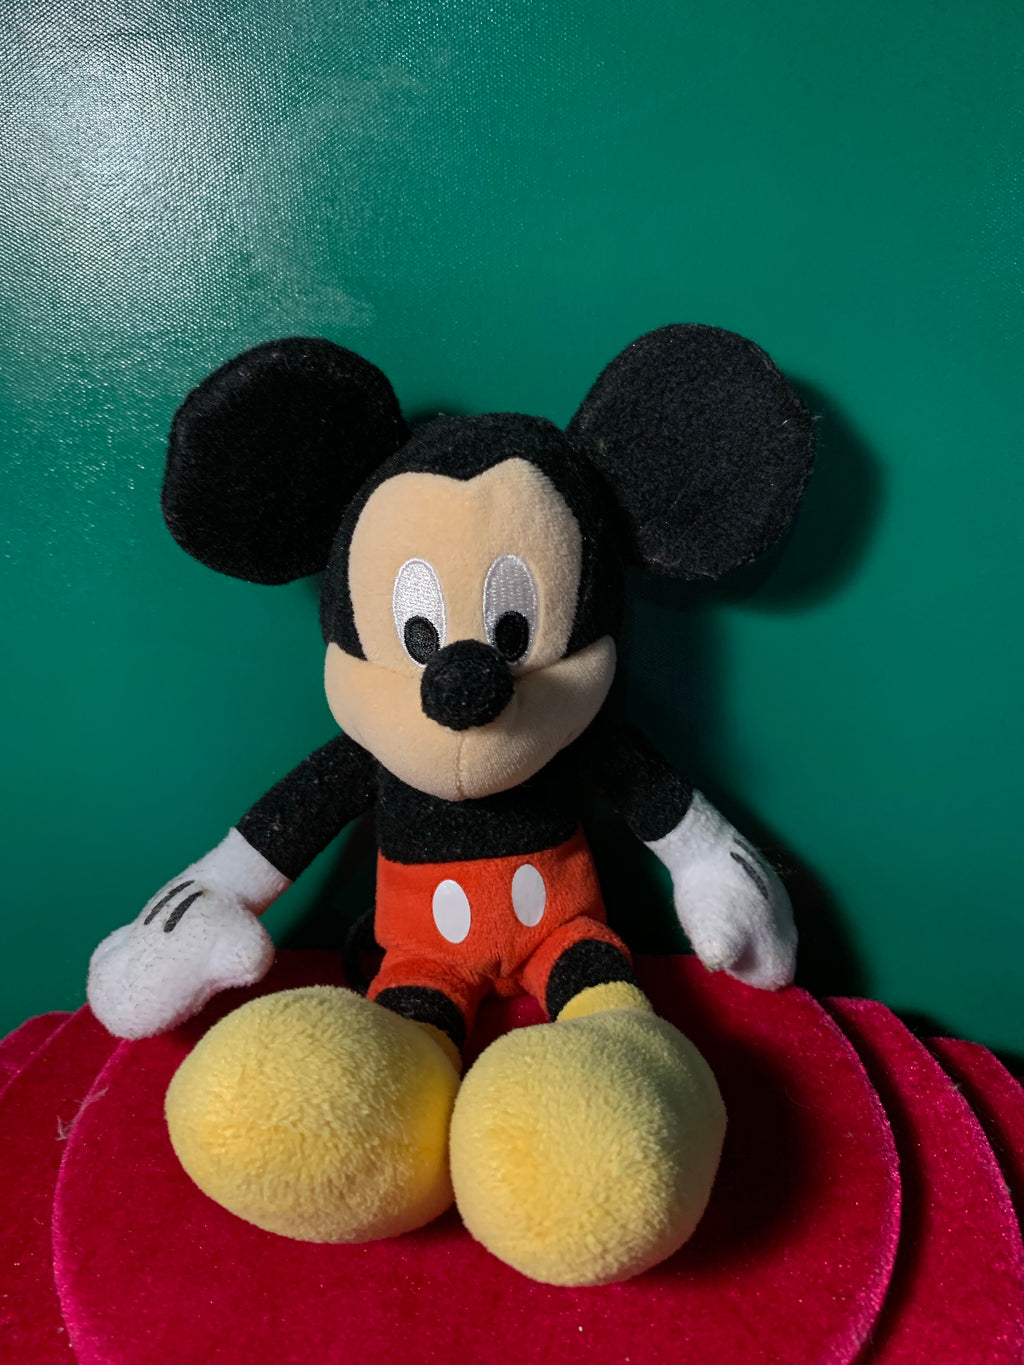 Mickey Mouse, Disney